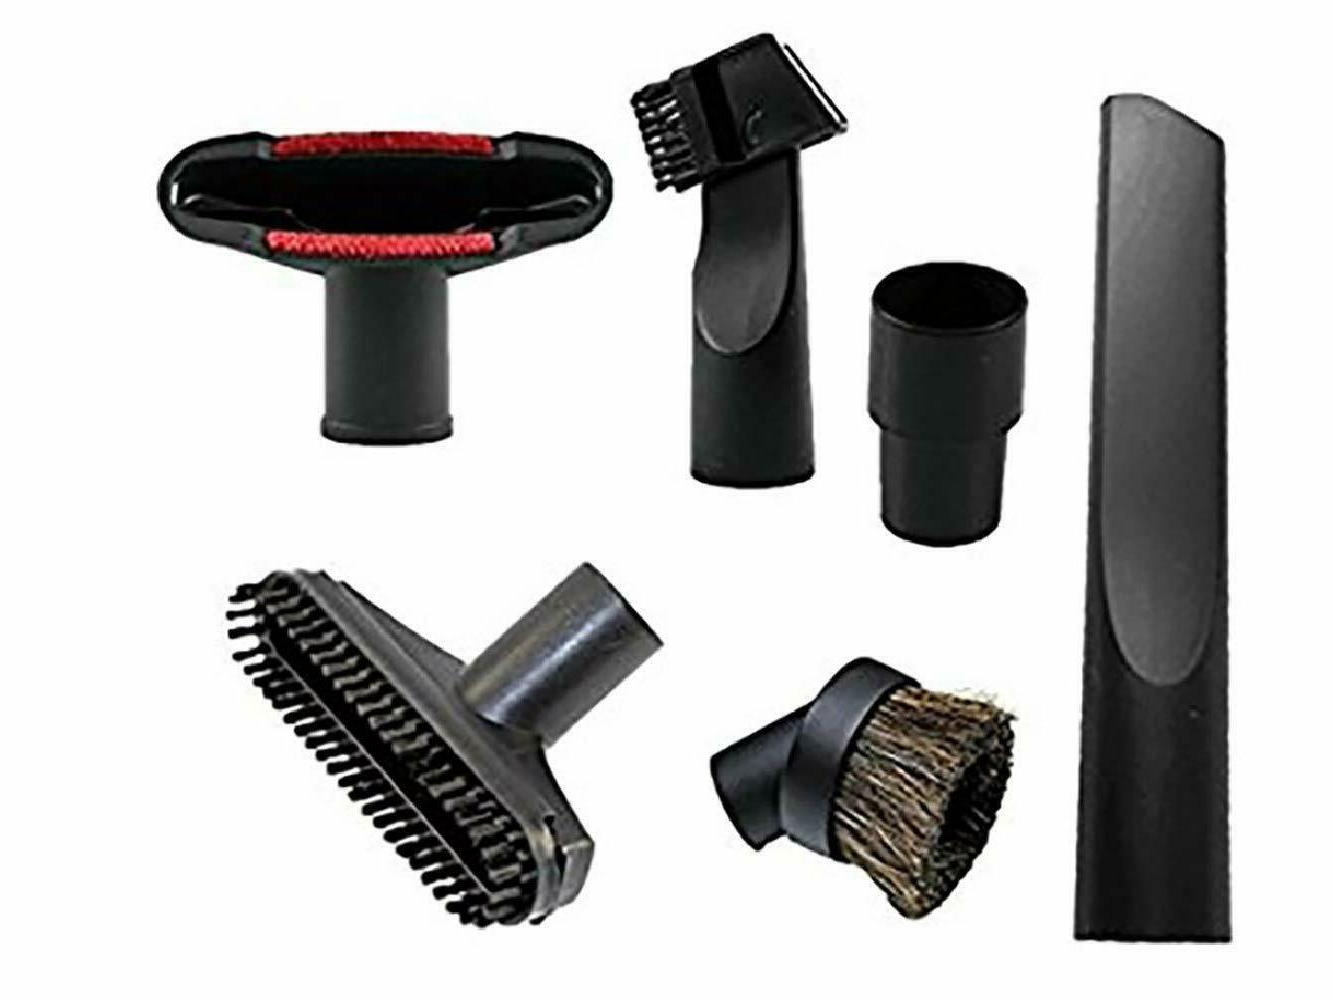 ANBOO Adapter & Brush Tool Kit Replacement for Henry Vax Hoo